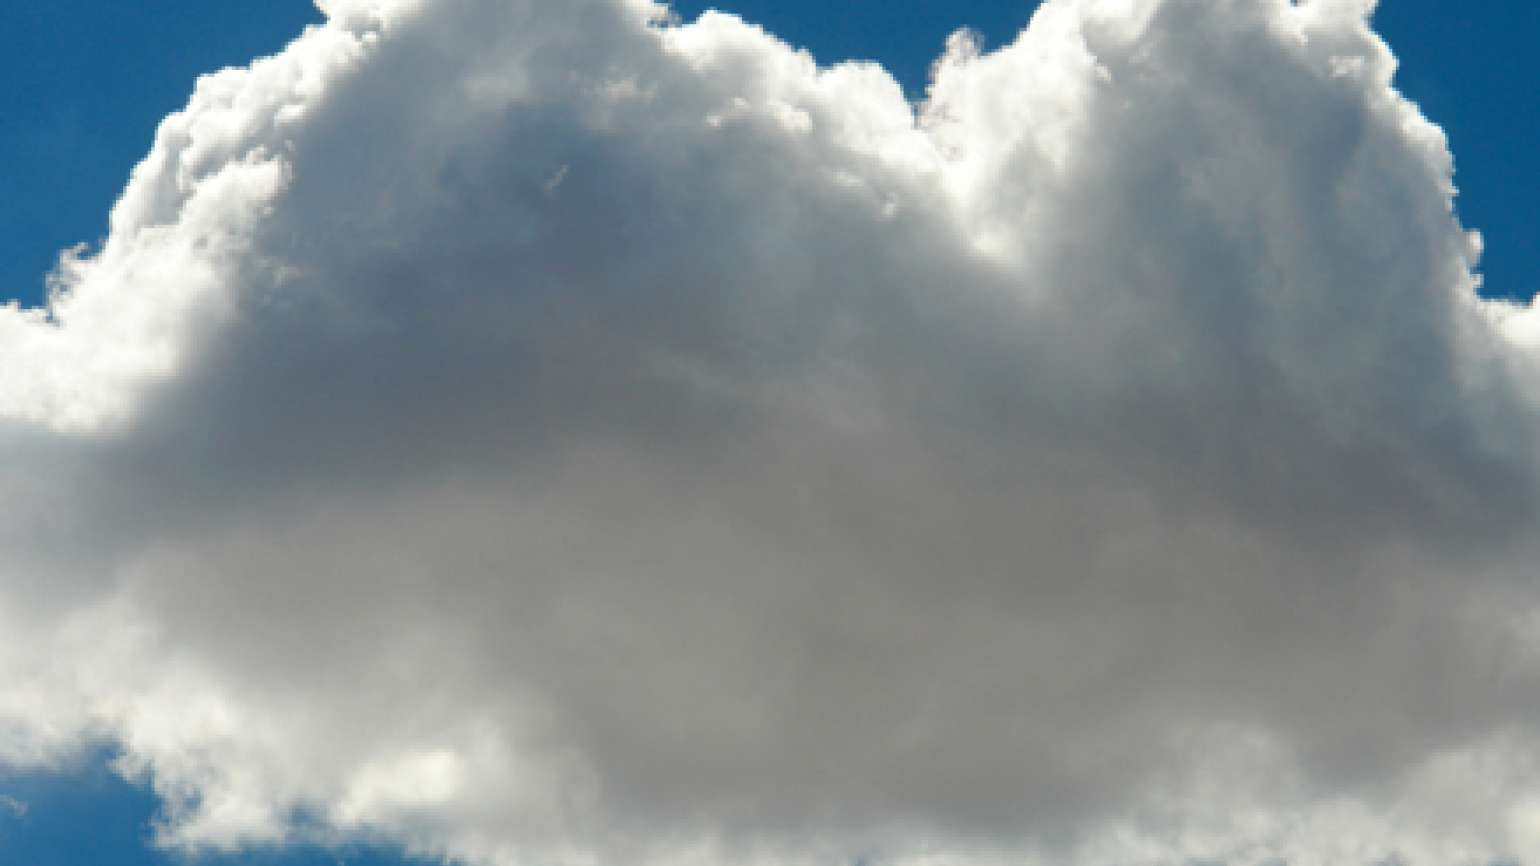 A single gray cloud in an otherwise blue sky